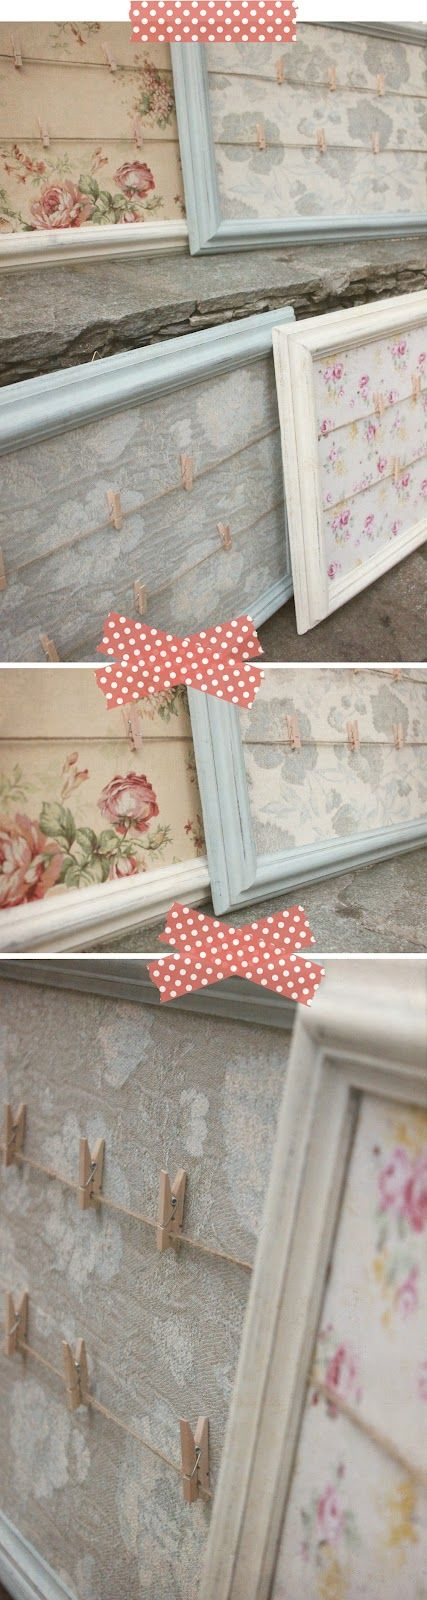 Framed Memo Holder - Shabby Chic Interiors **Great to display handmade cards**